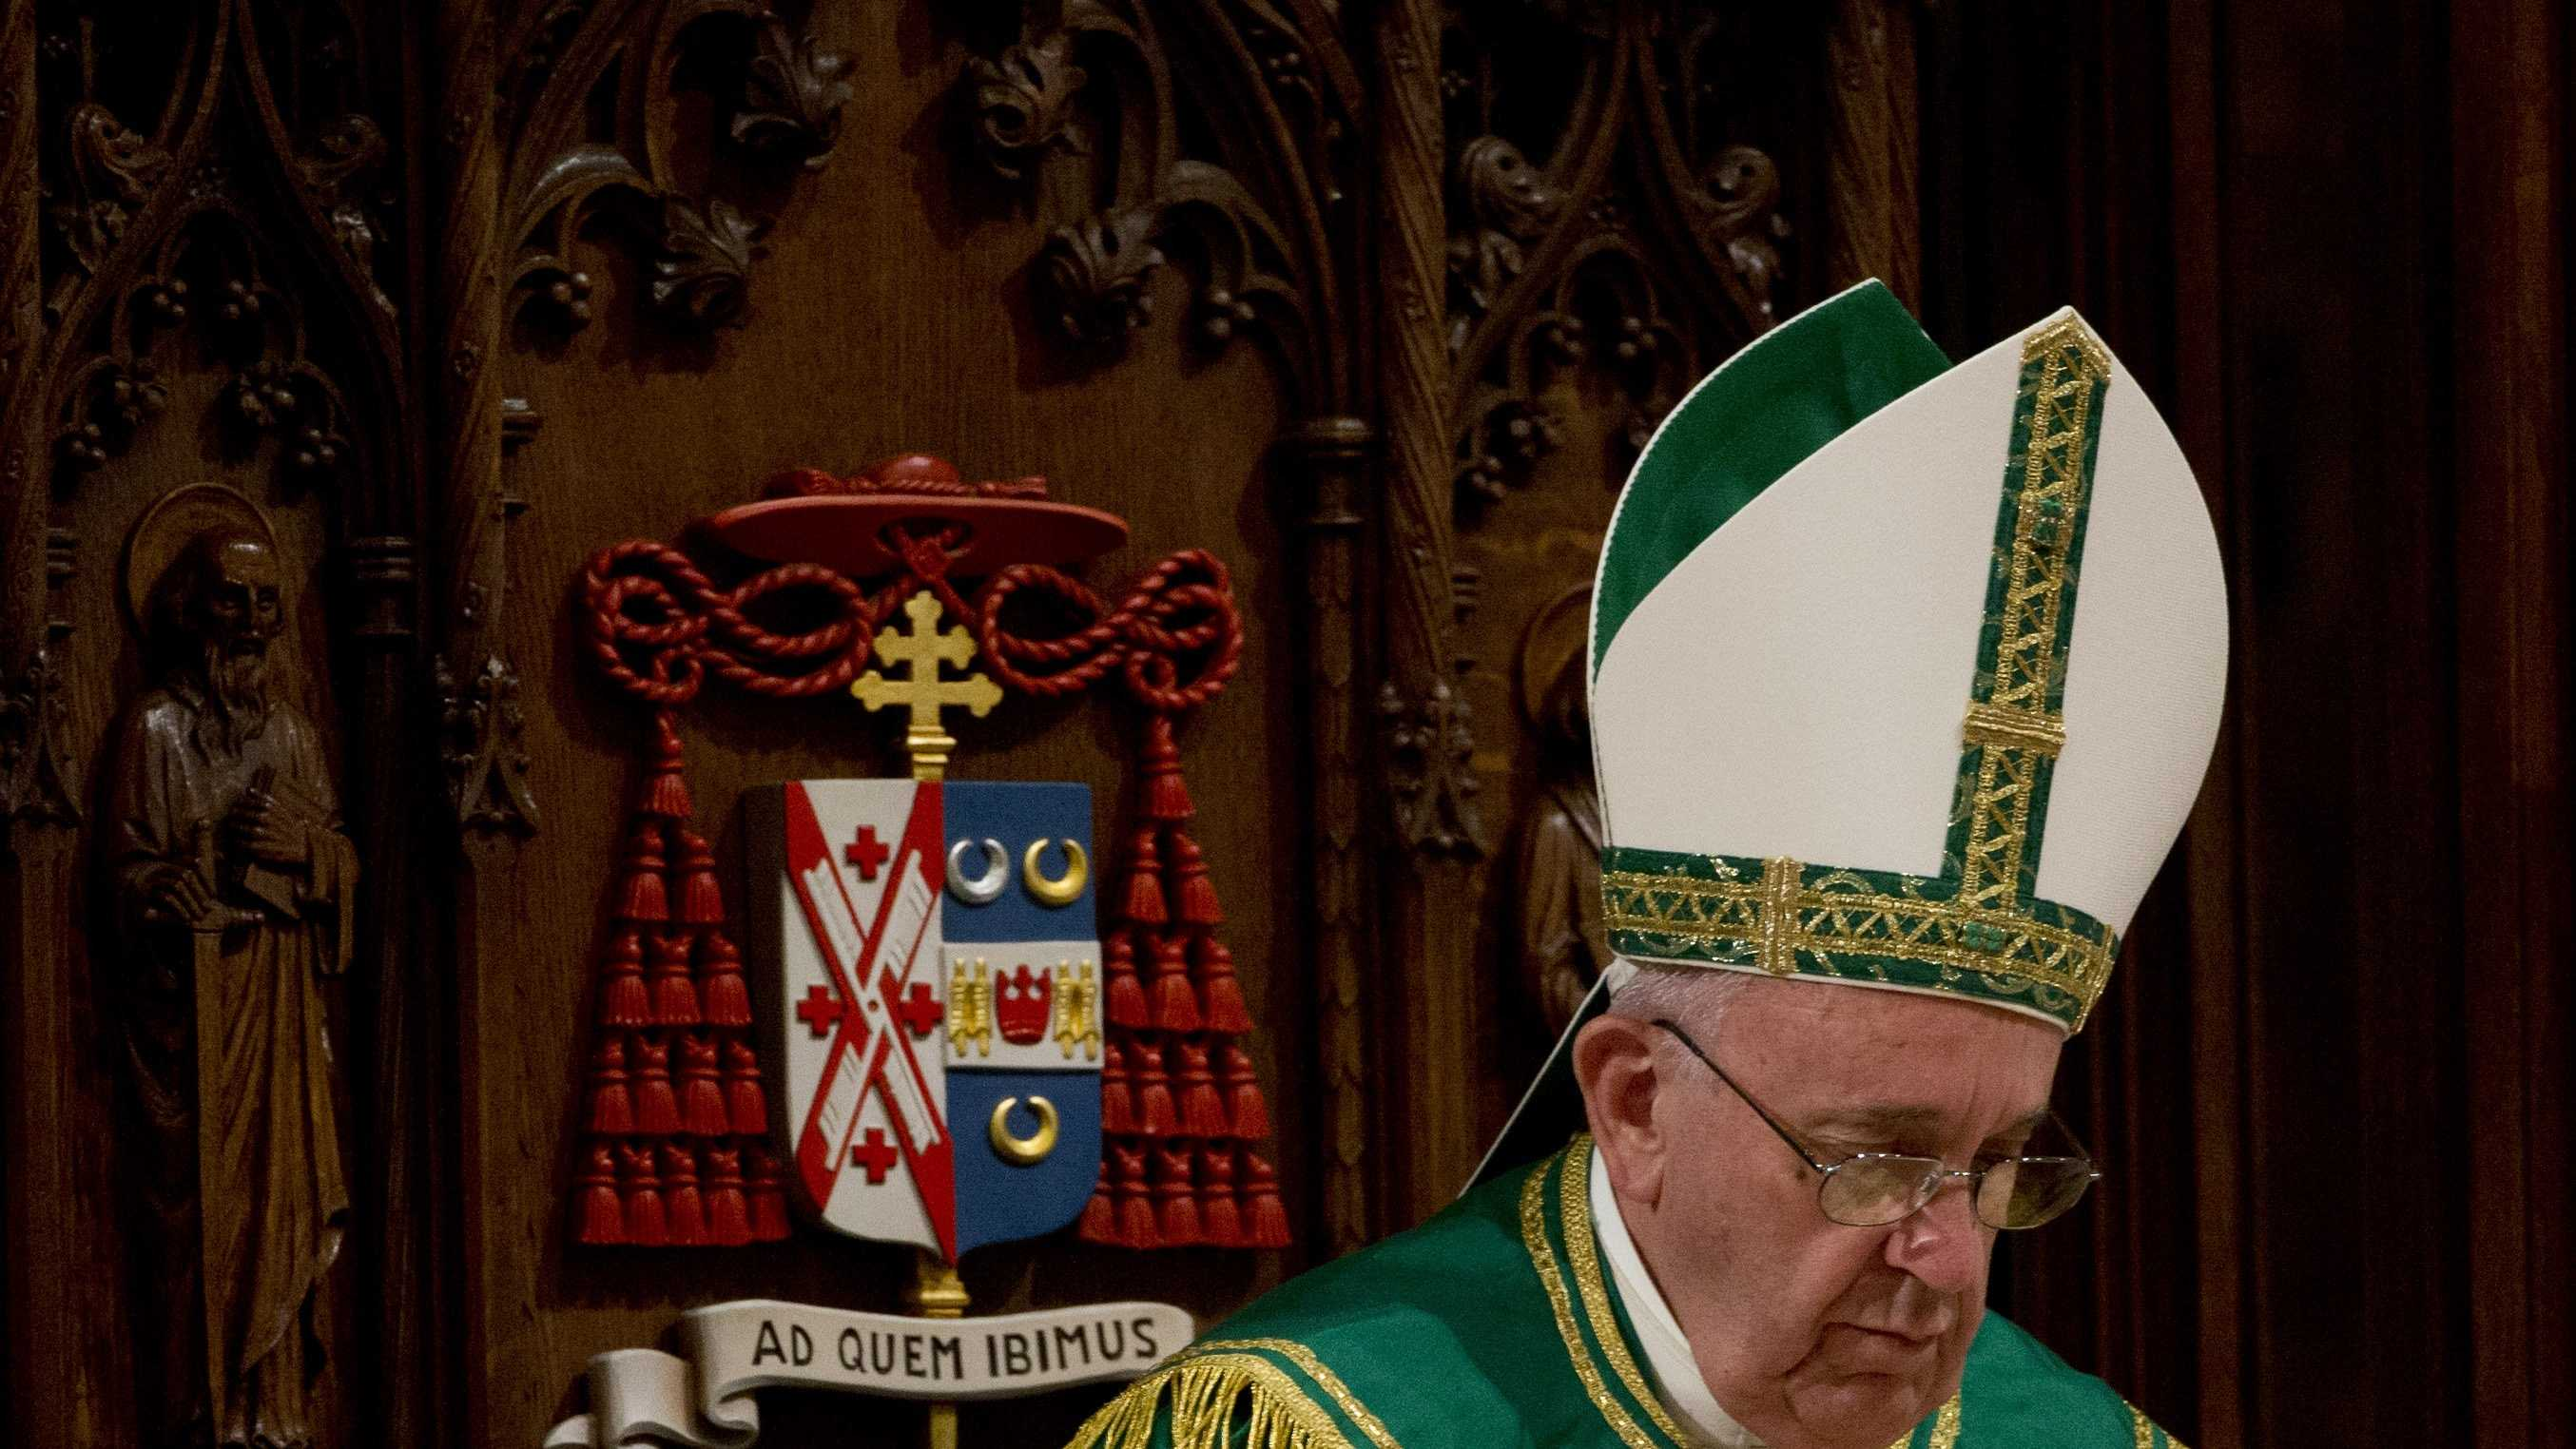 Pope Francis leads an evening prayer service at St. Patrick's Cathedral, Thursday, Sept. 24, 2015, in New York. (AP Photo/Alessandra Tarantino)